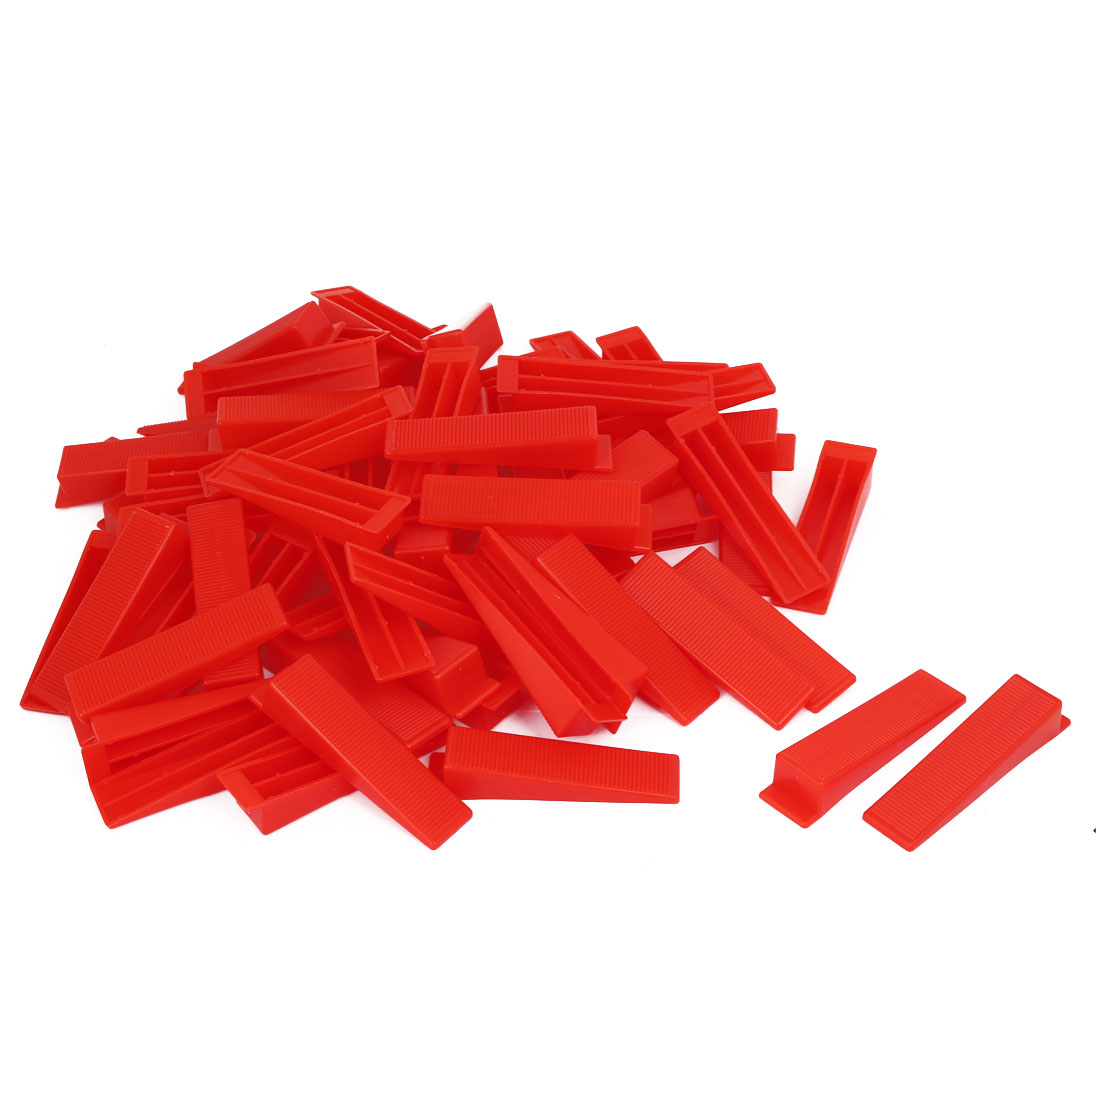 Wall Floor Tile Flat Leveling System Balance Wedges Red 90mmx22mmx16.5mm 100pcs